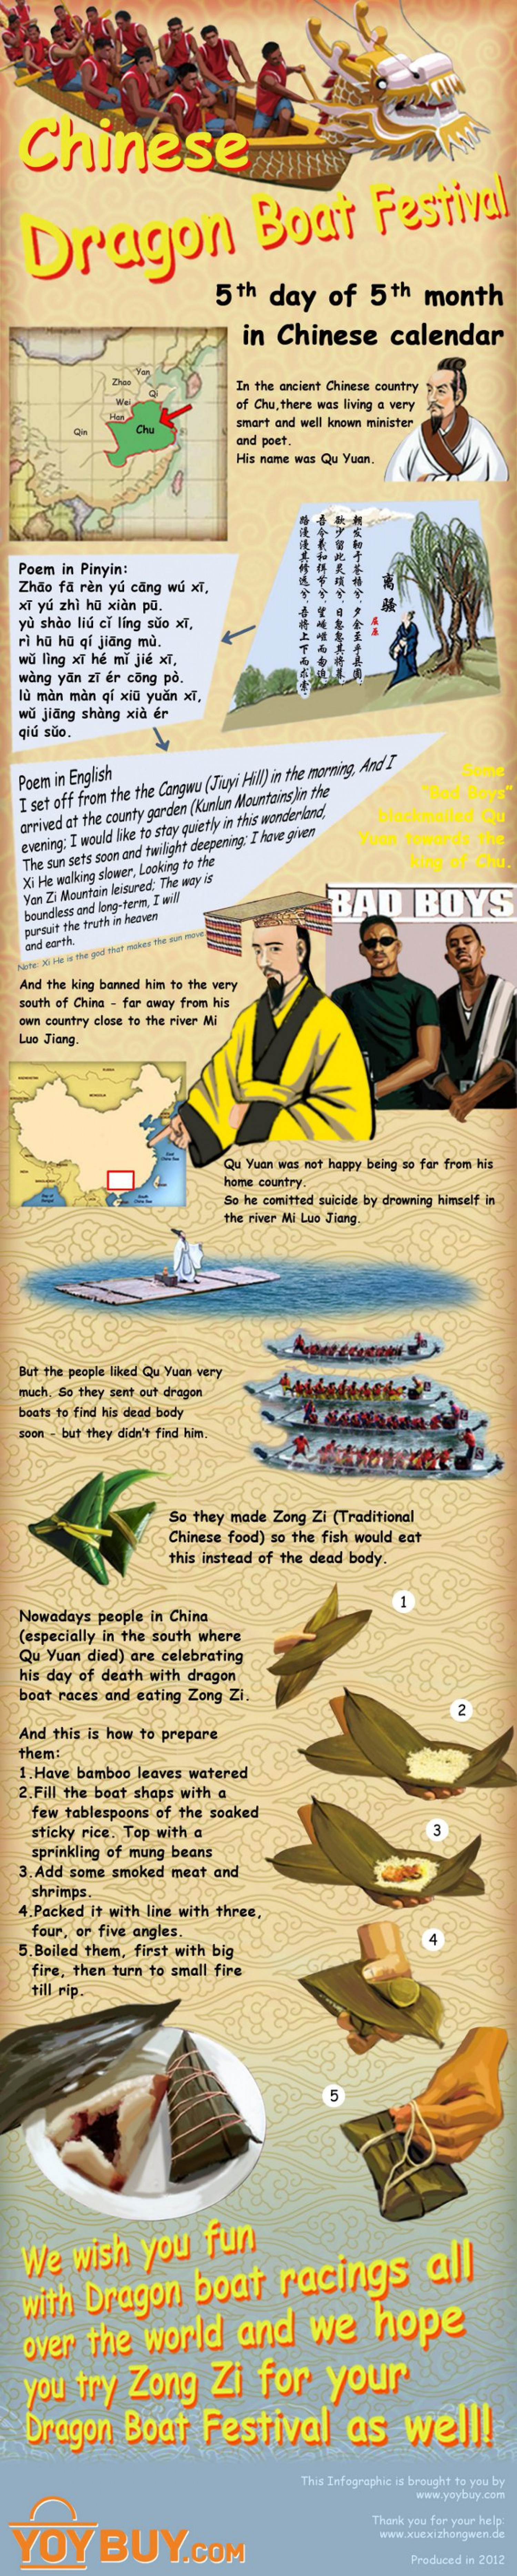 Chinese Dragon Boat Festival Infographic